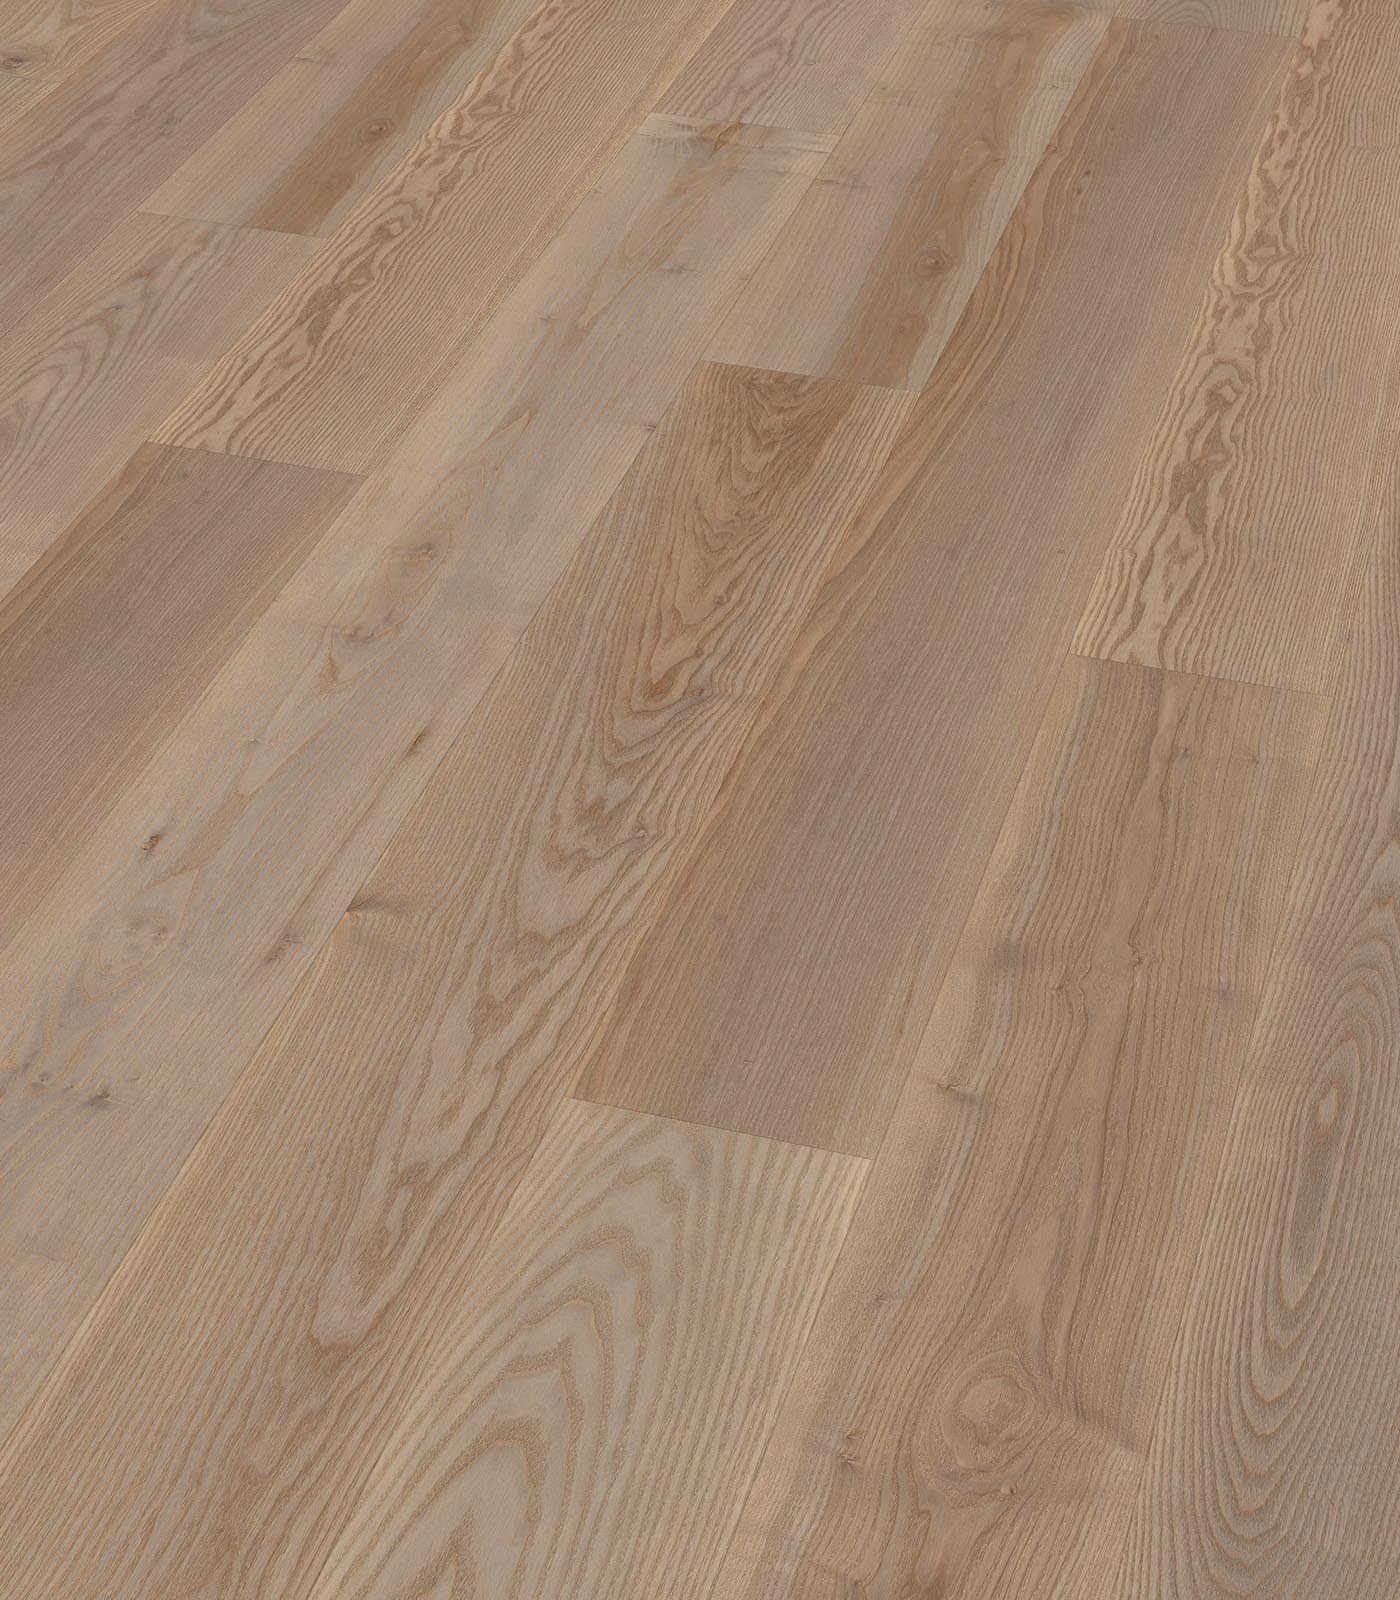 Amsterdam - After Oak Collection - European Ash Floor - Angle